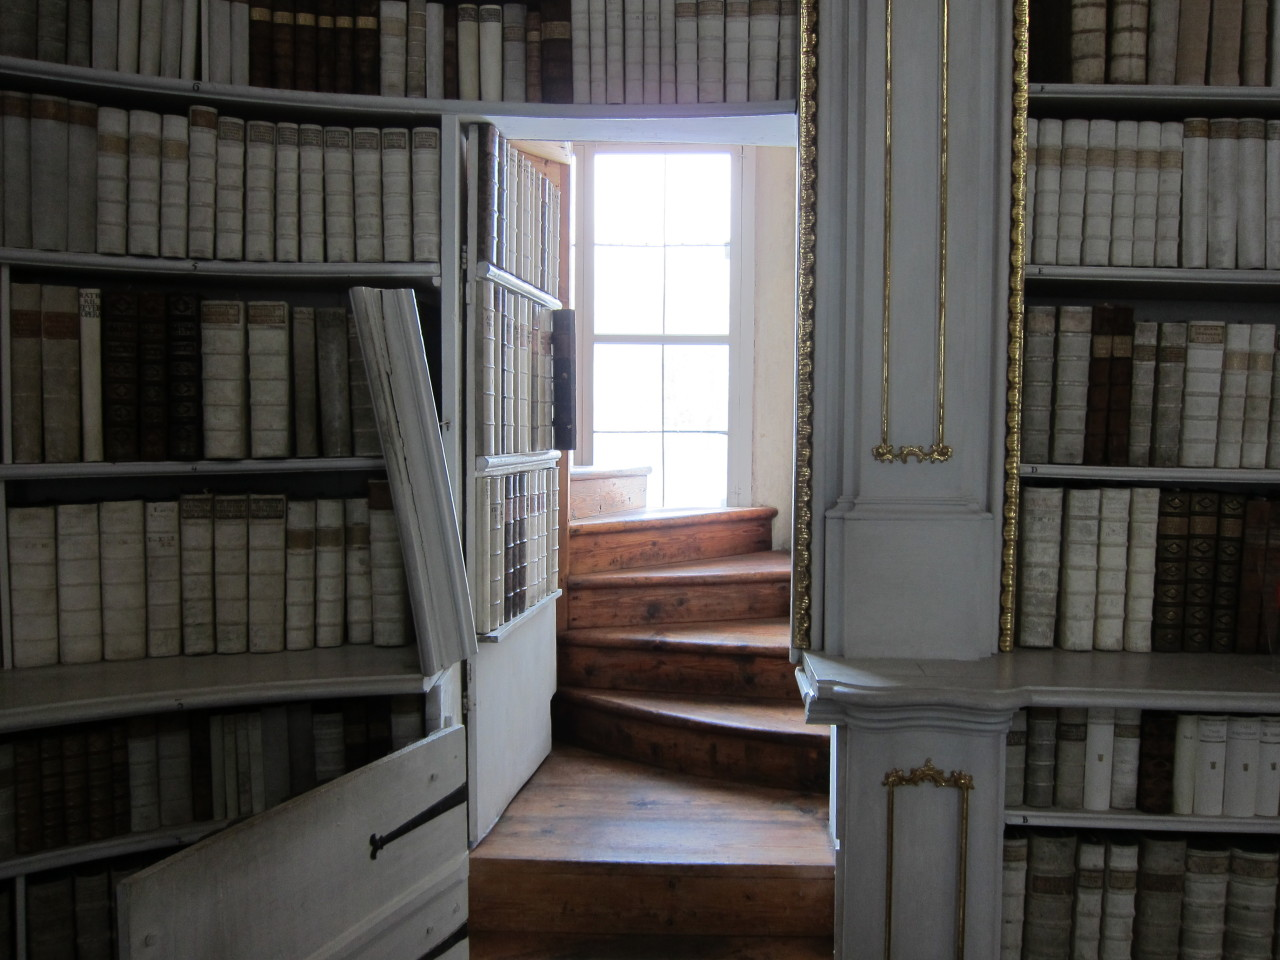 olympialetan:  One of the secret doors of the Stift Admont library, Austria.